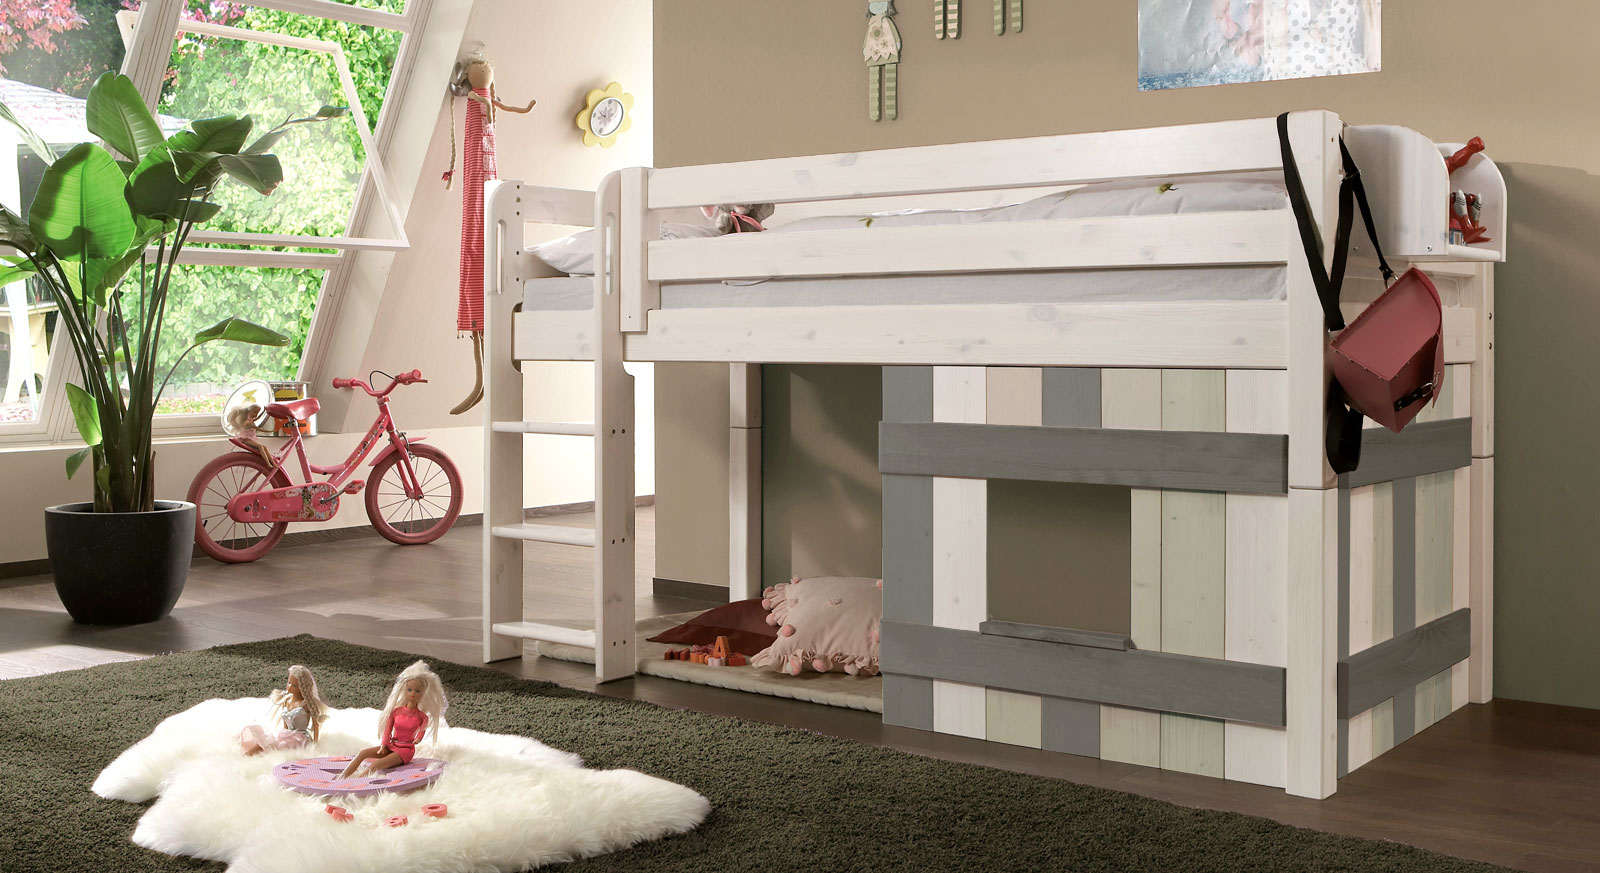 kinderhochbett mit leiter und h tte aus holz kids paradise. Black Bedroom Furniture Sets. Home Design Ideas